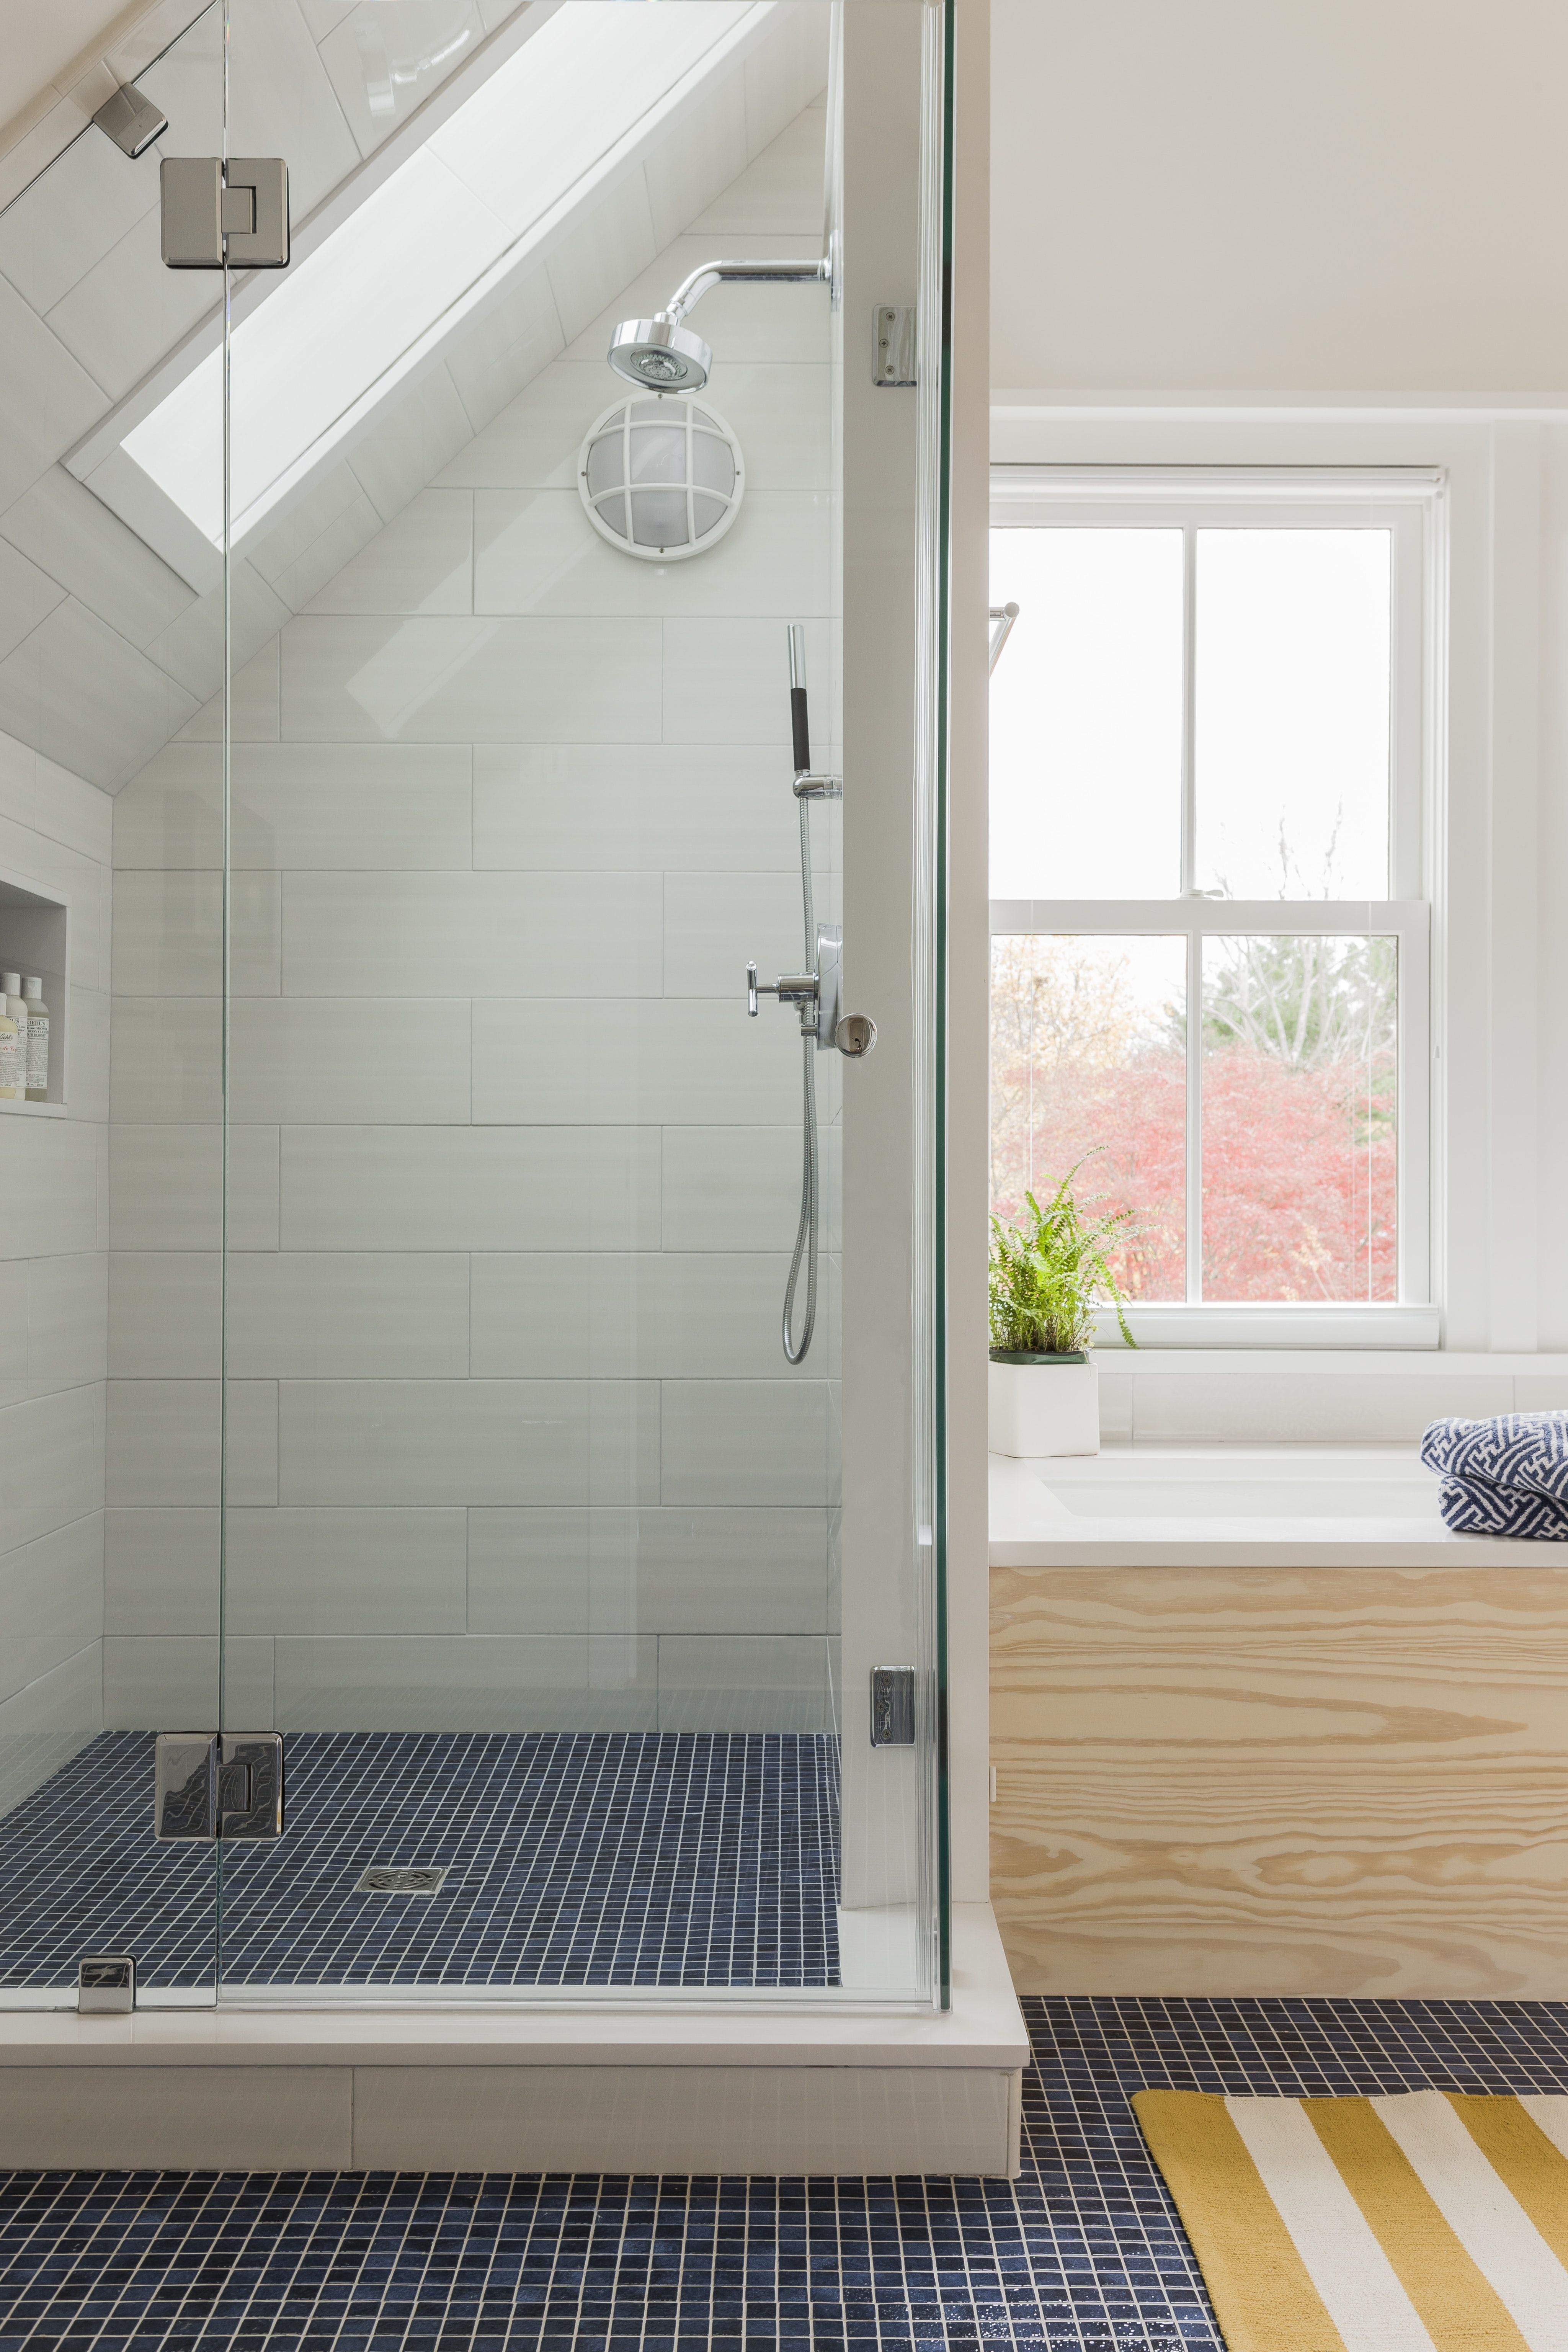 Pin By Lindsey Stevenson On Princeton Manor Master In 2020 With Images Attic Bathroom Attic Shower Eclectic Bathroom